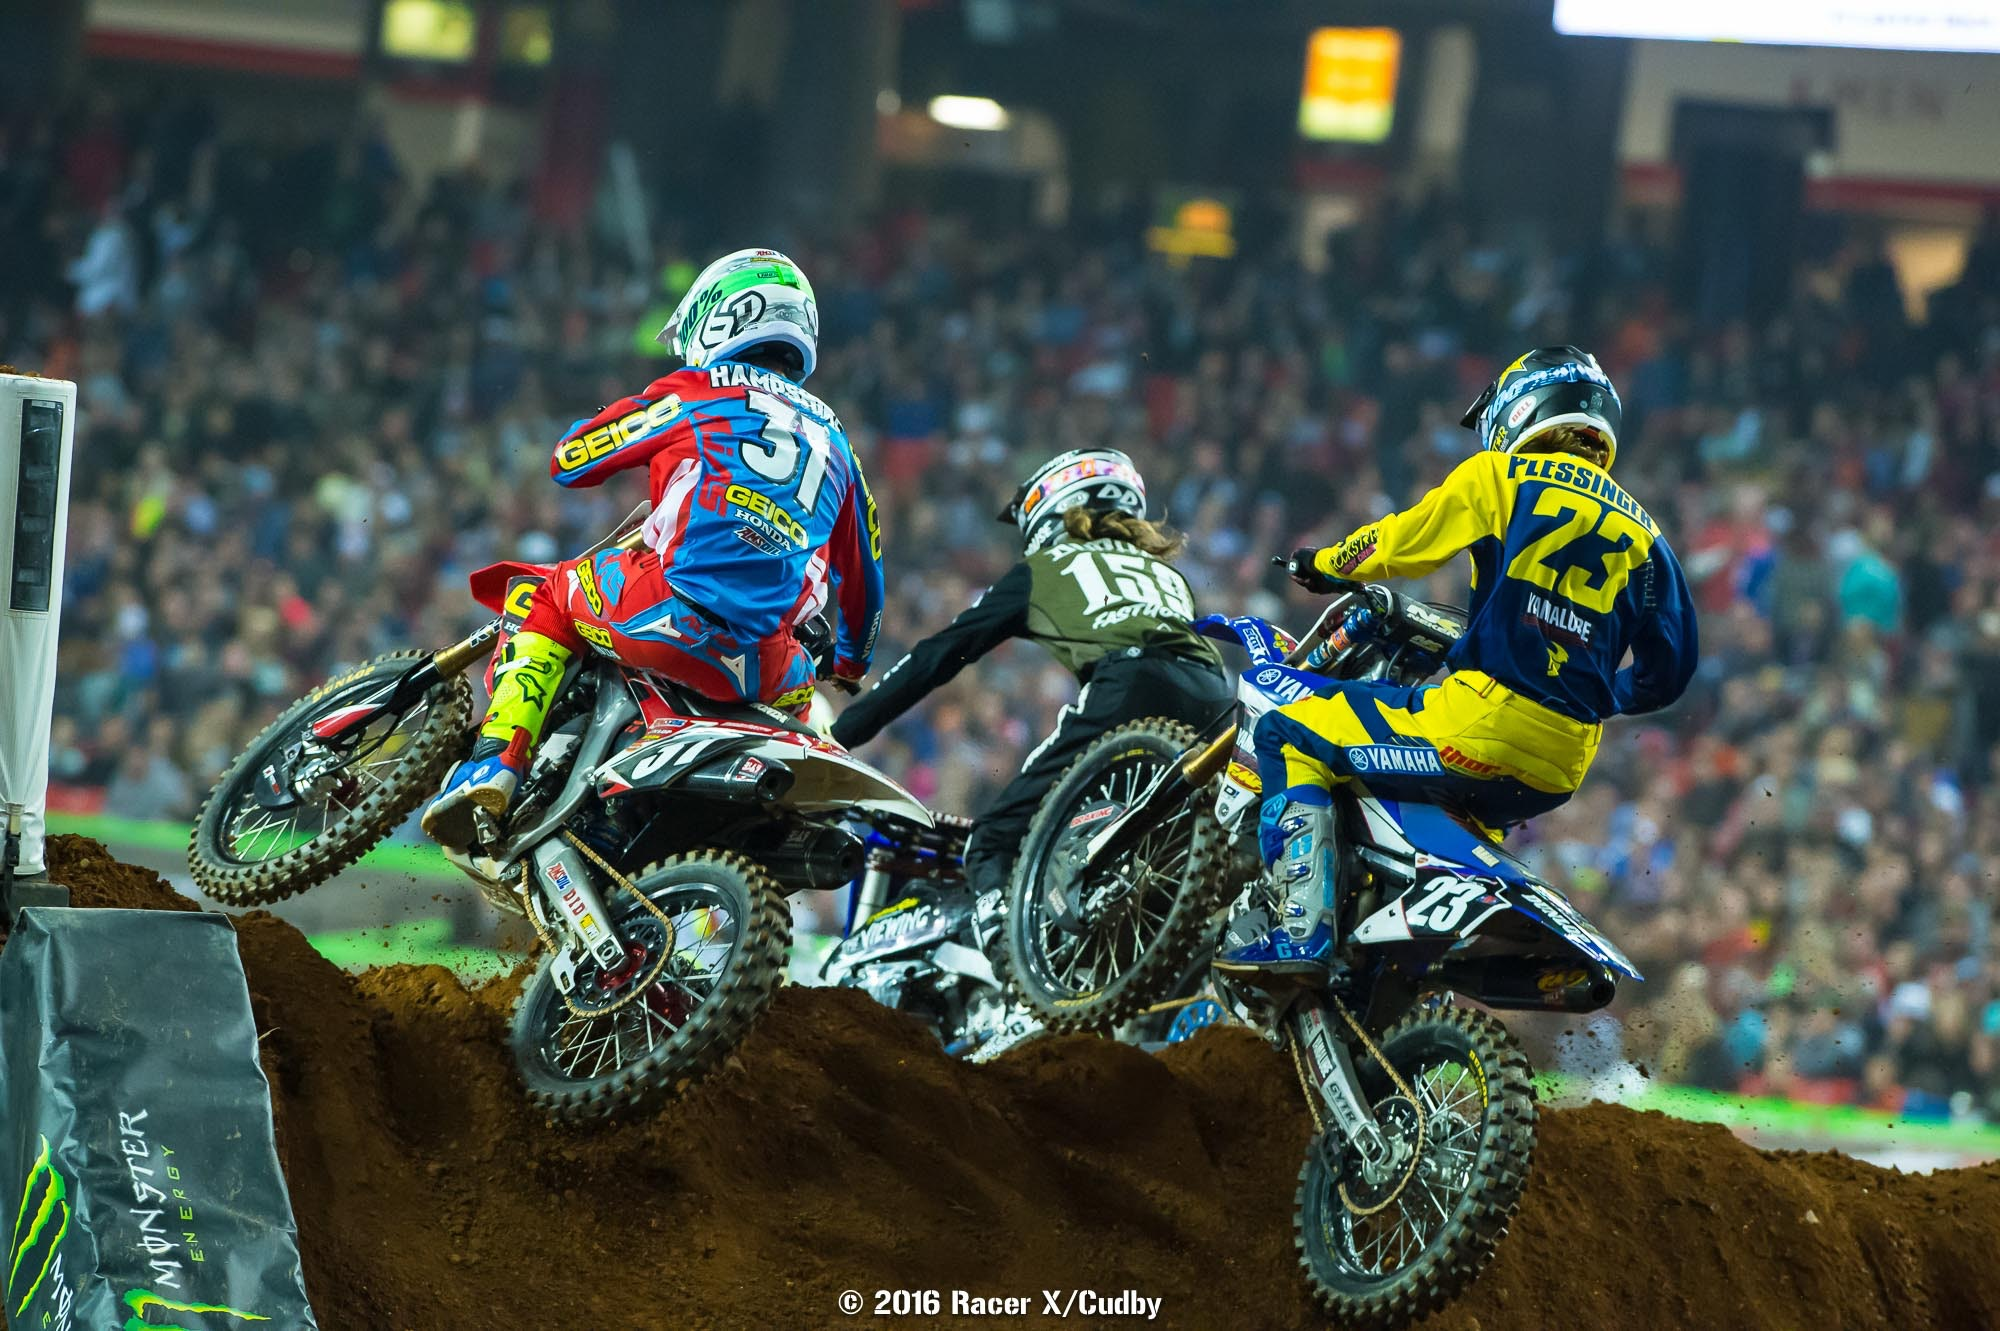 Furious battles took place all over the track in opener, but Plessinger (23) got the better of Hampshire and Durham.